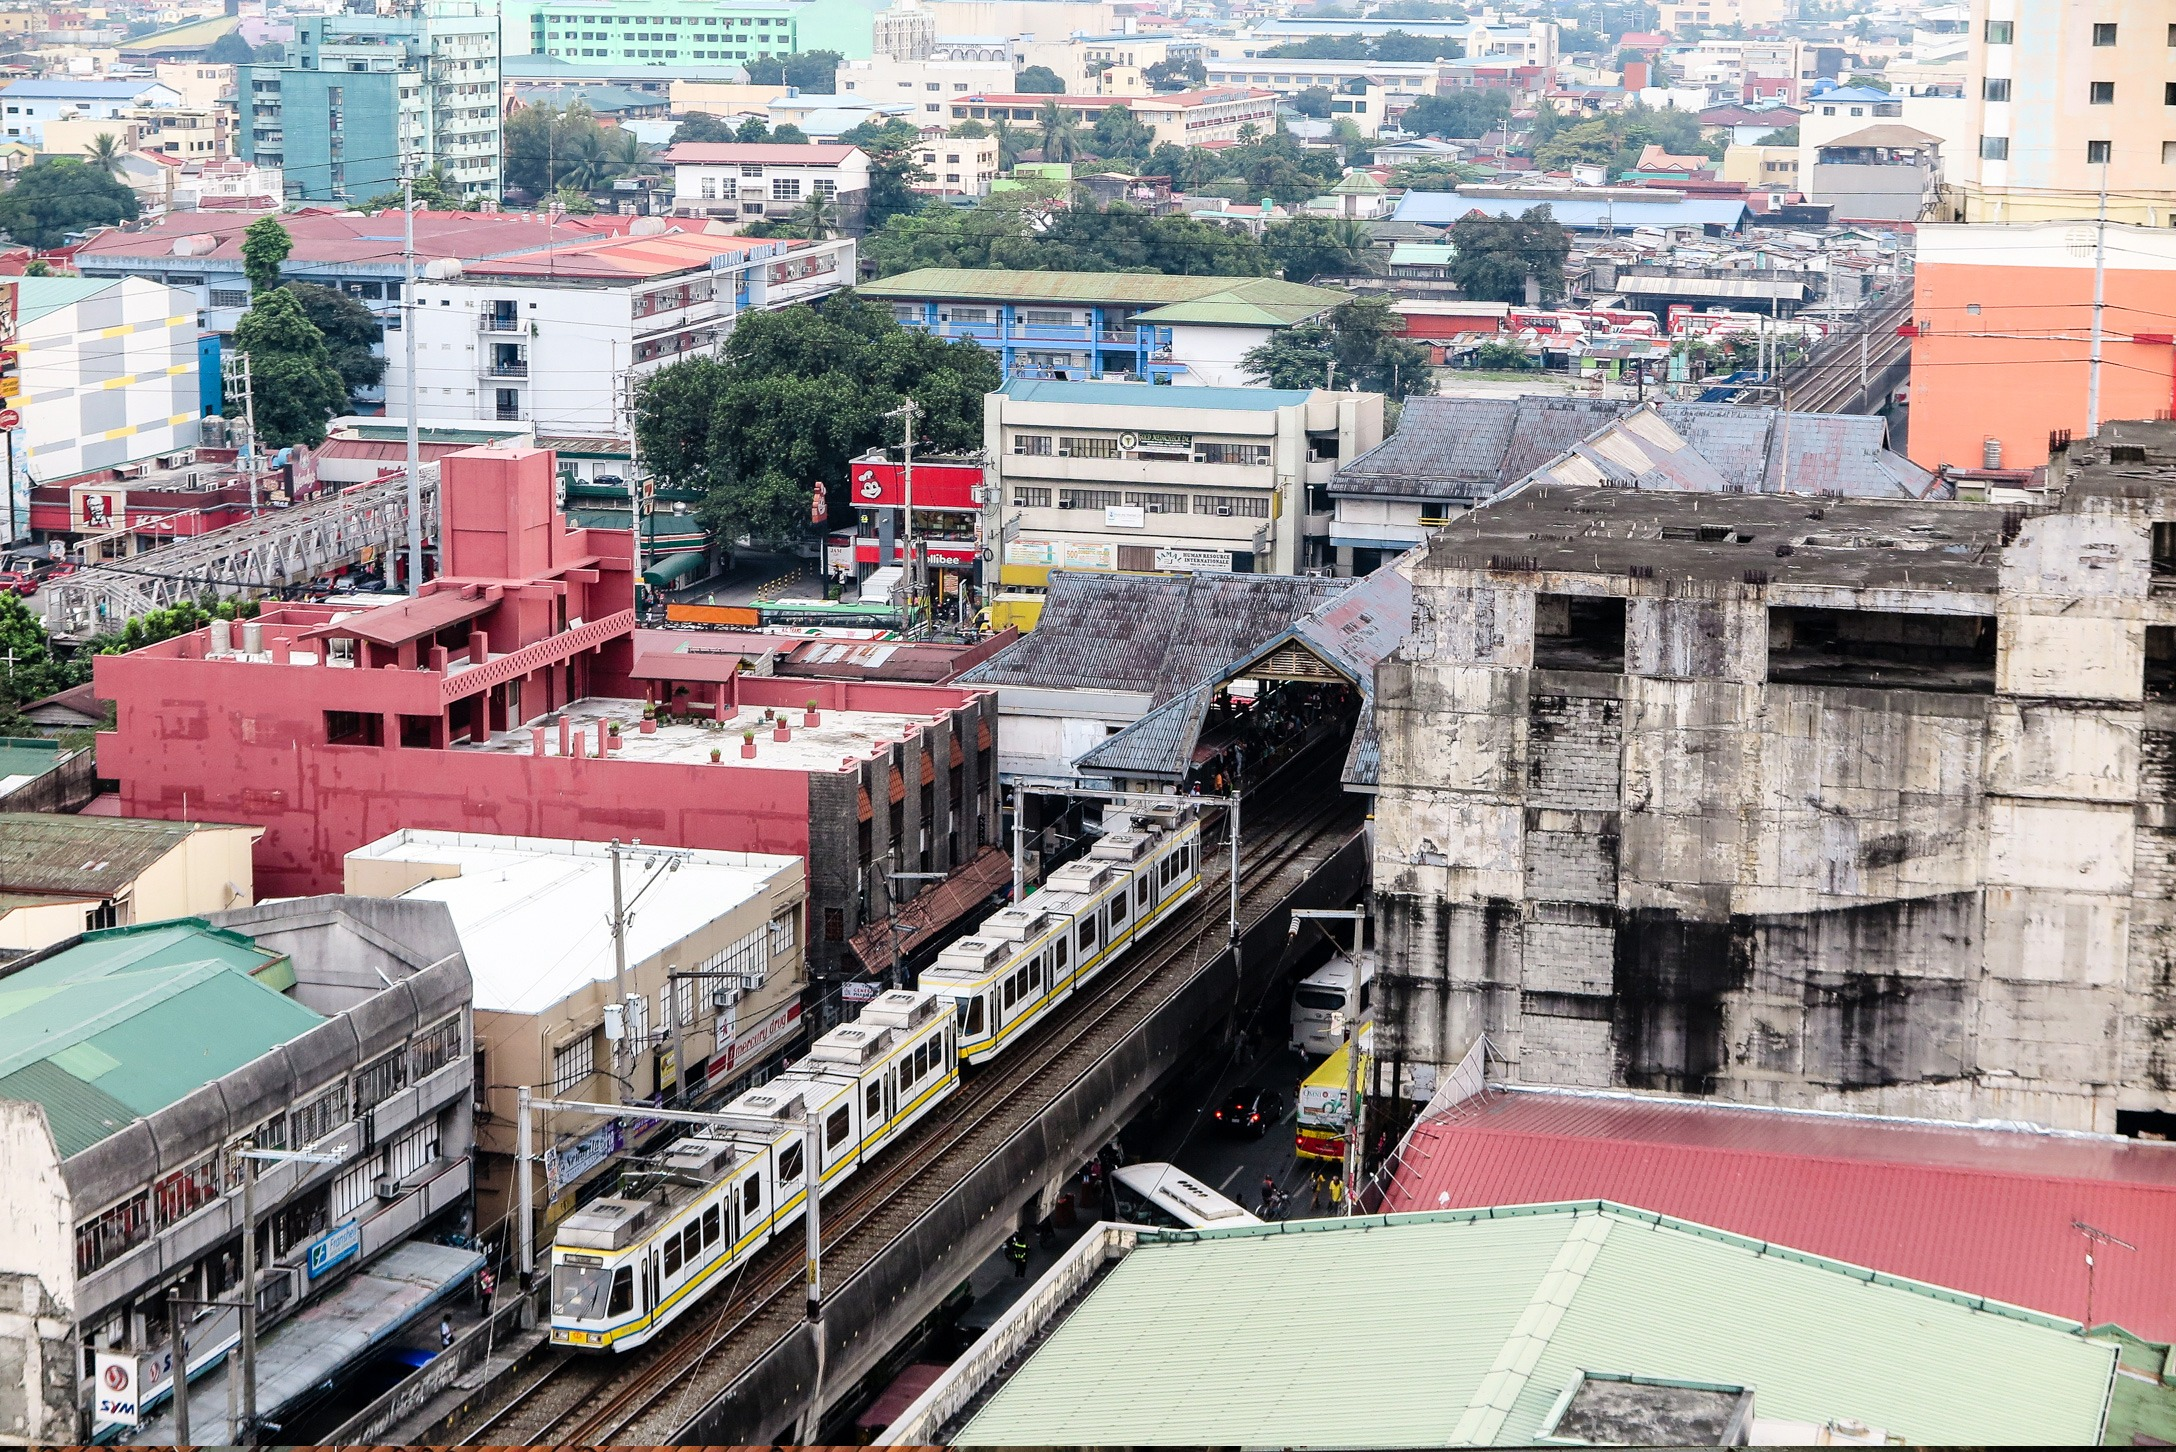 Manila Airbnb apartment view